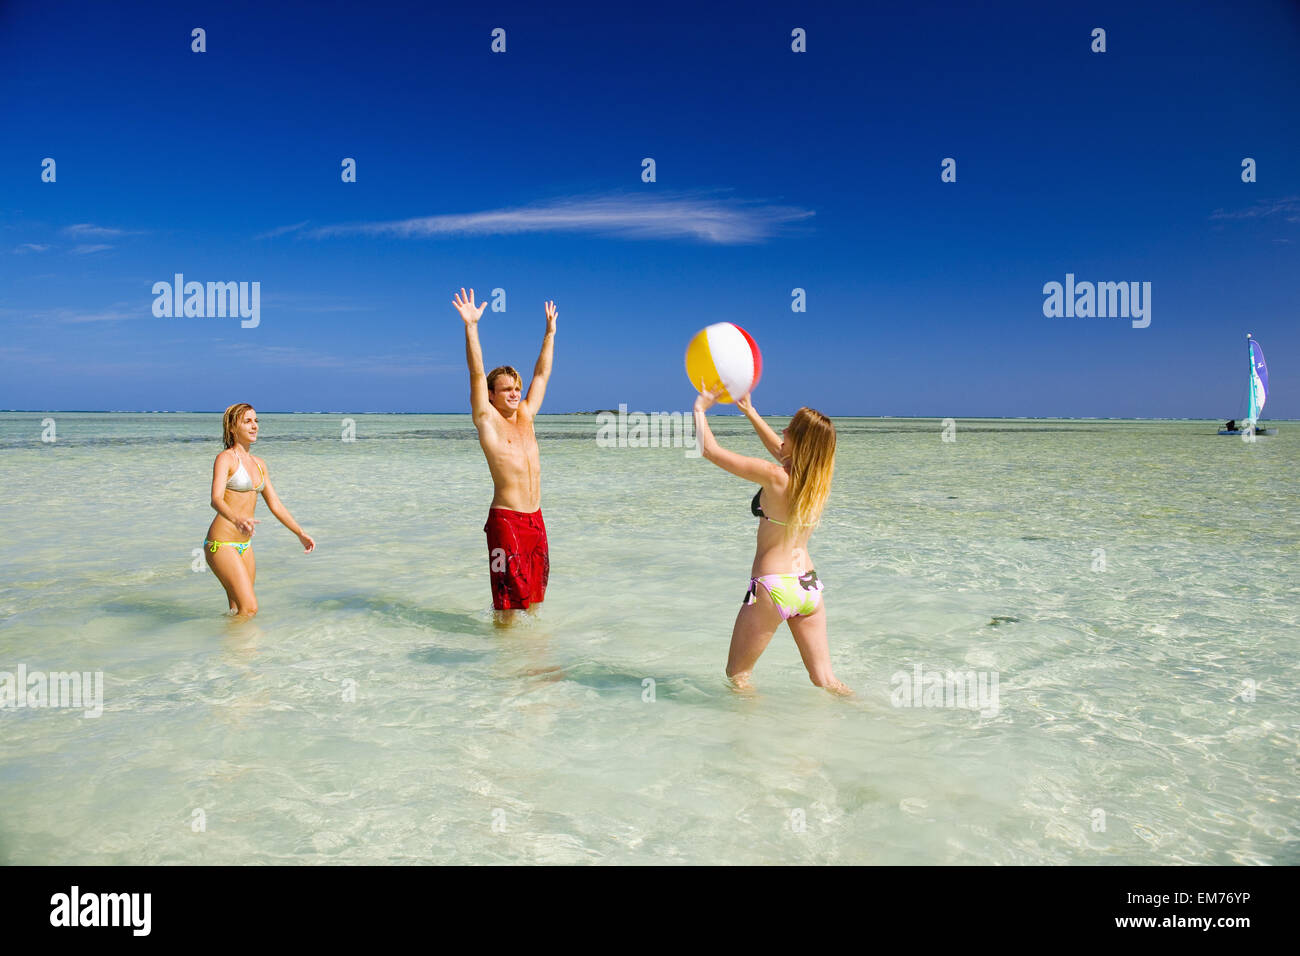 Hawaii Oahu Kaneohe Young People Playing With Beach Ball In Crystal Clear Water At The Sandbar Or Dissapearing Island